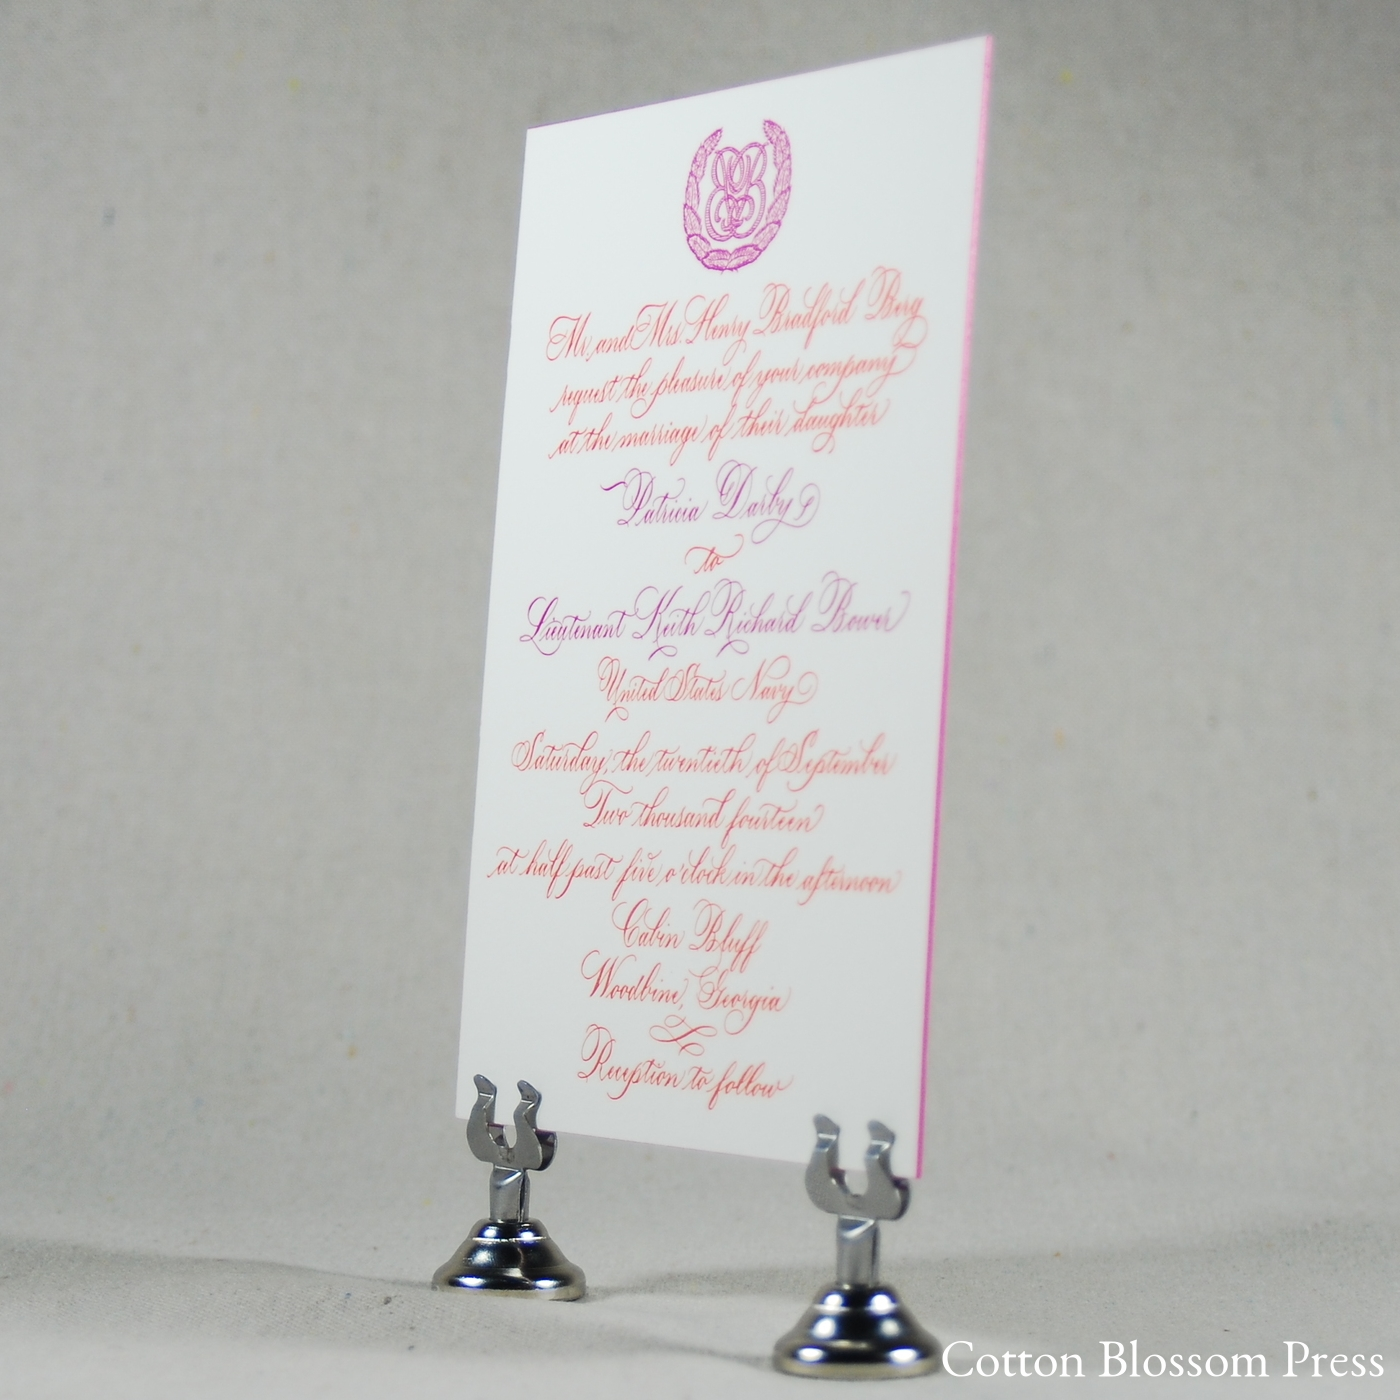 CBP-Wedding_Darby_Invite(sideview).JPG